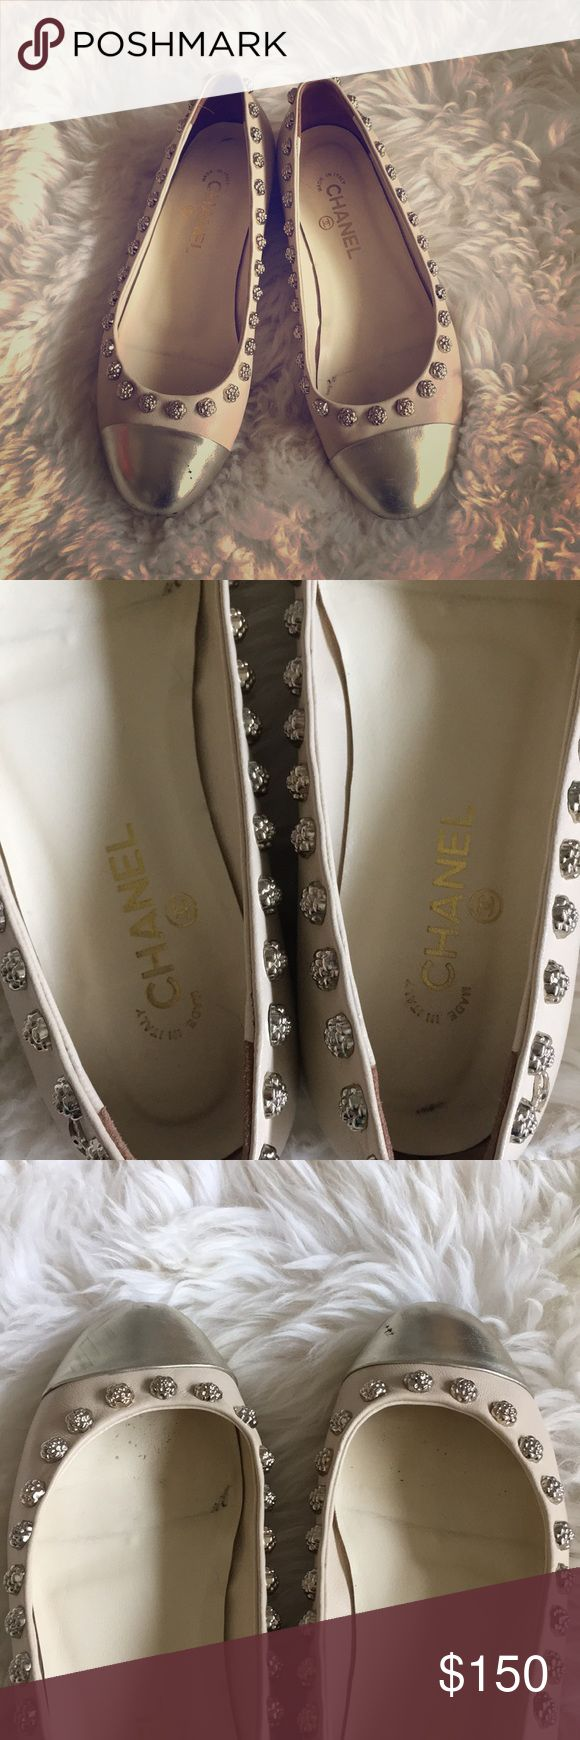 Chanel Camellia Flower Detail Flats Italy 39 US 8 Pre-owned Chanel Flats. 39C, fits like US 8. Chanel logo on the back outside. Flaws as shown in pictures. Please let me know if you have any questions. No box, no dust bags and no returns! CHANEL Shoes Flats & Loafers